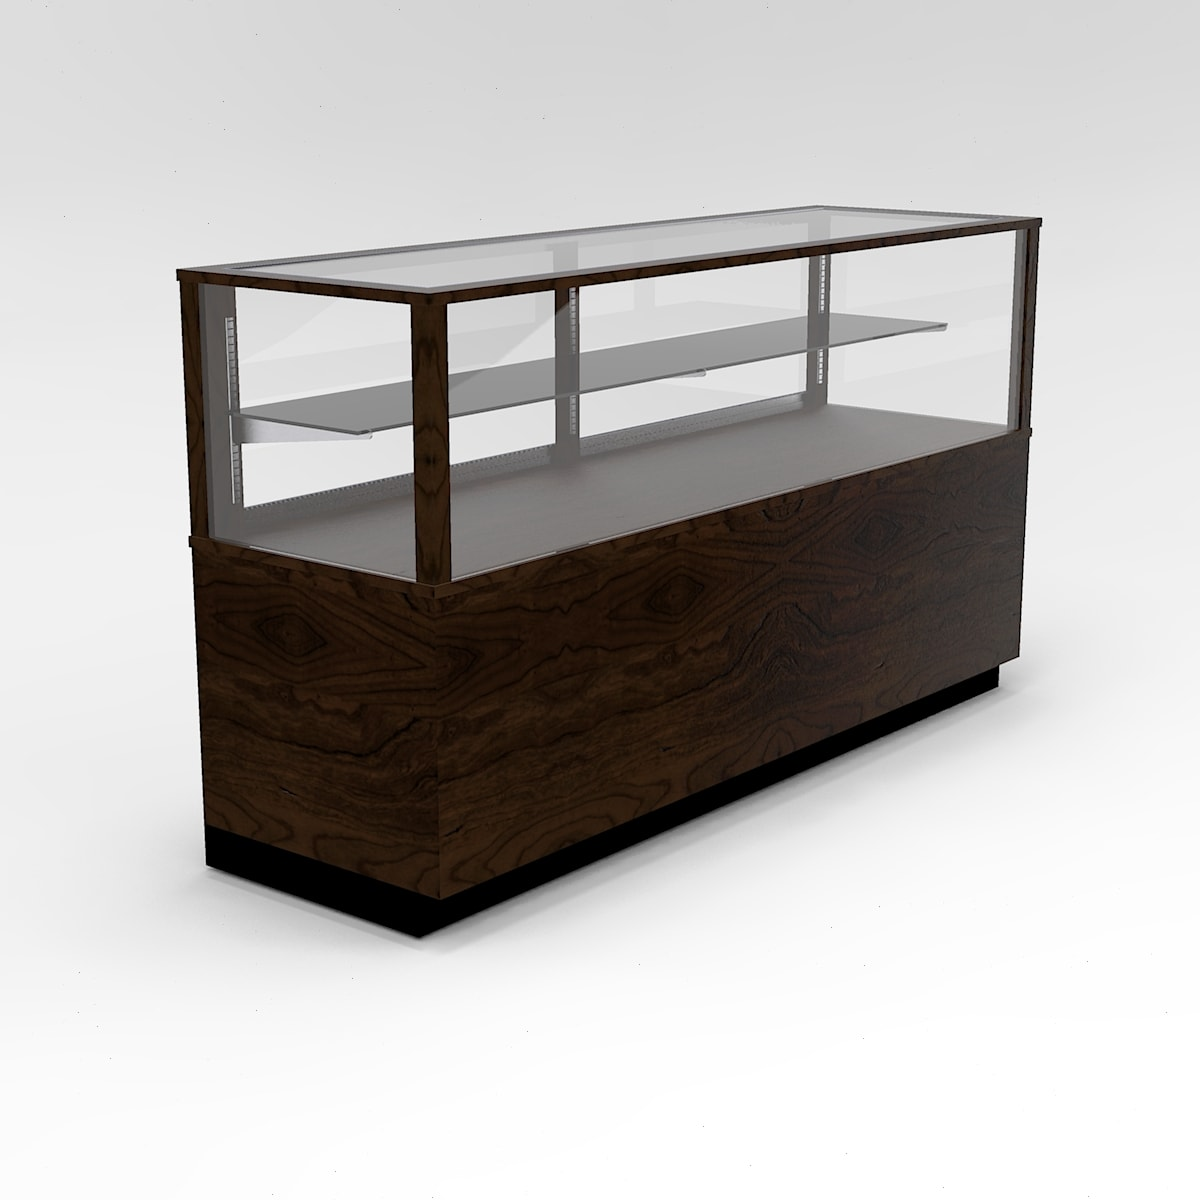 72 Inch Half Vision Contemporary Rectangle Horizontal Display Case To Purchase